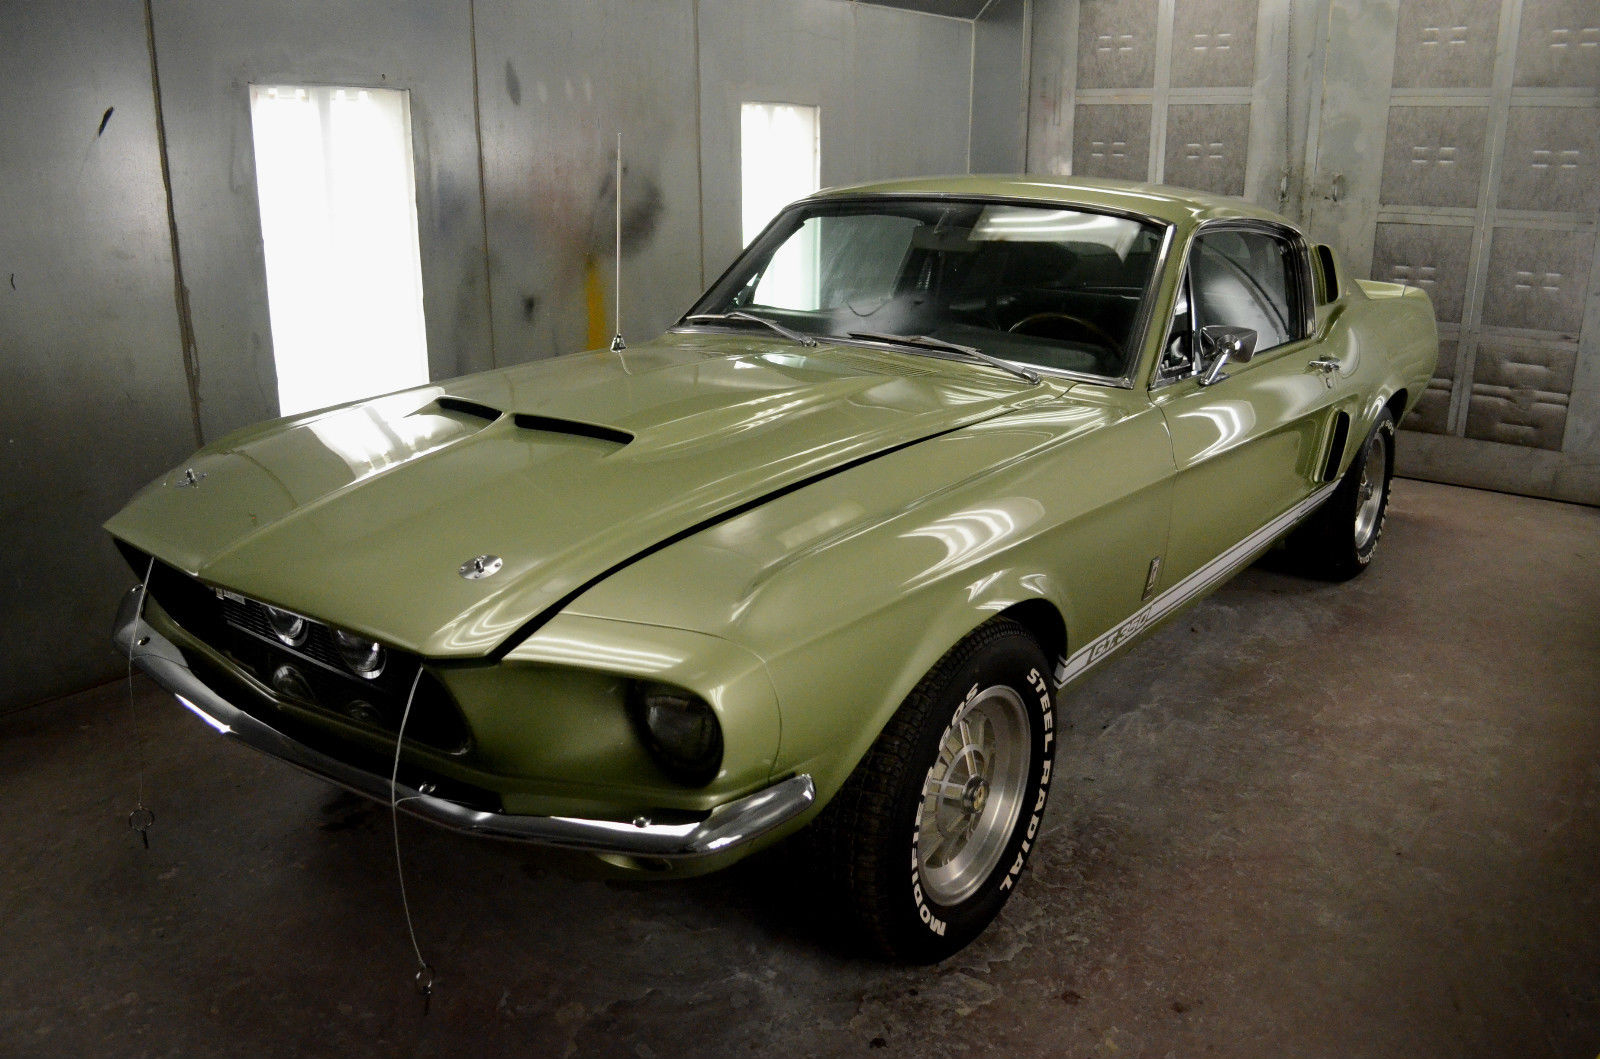 1967 Shelby GT350 Authentic Original and Verified SAAC